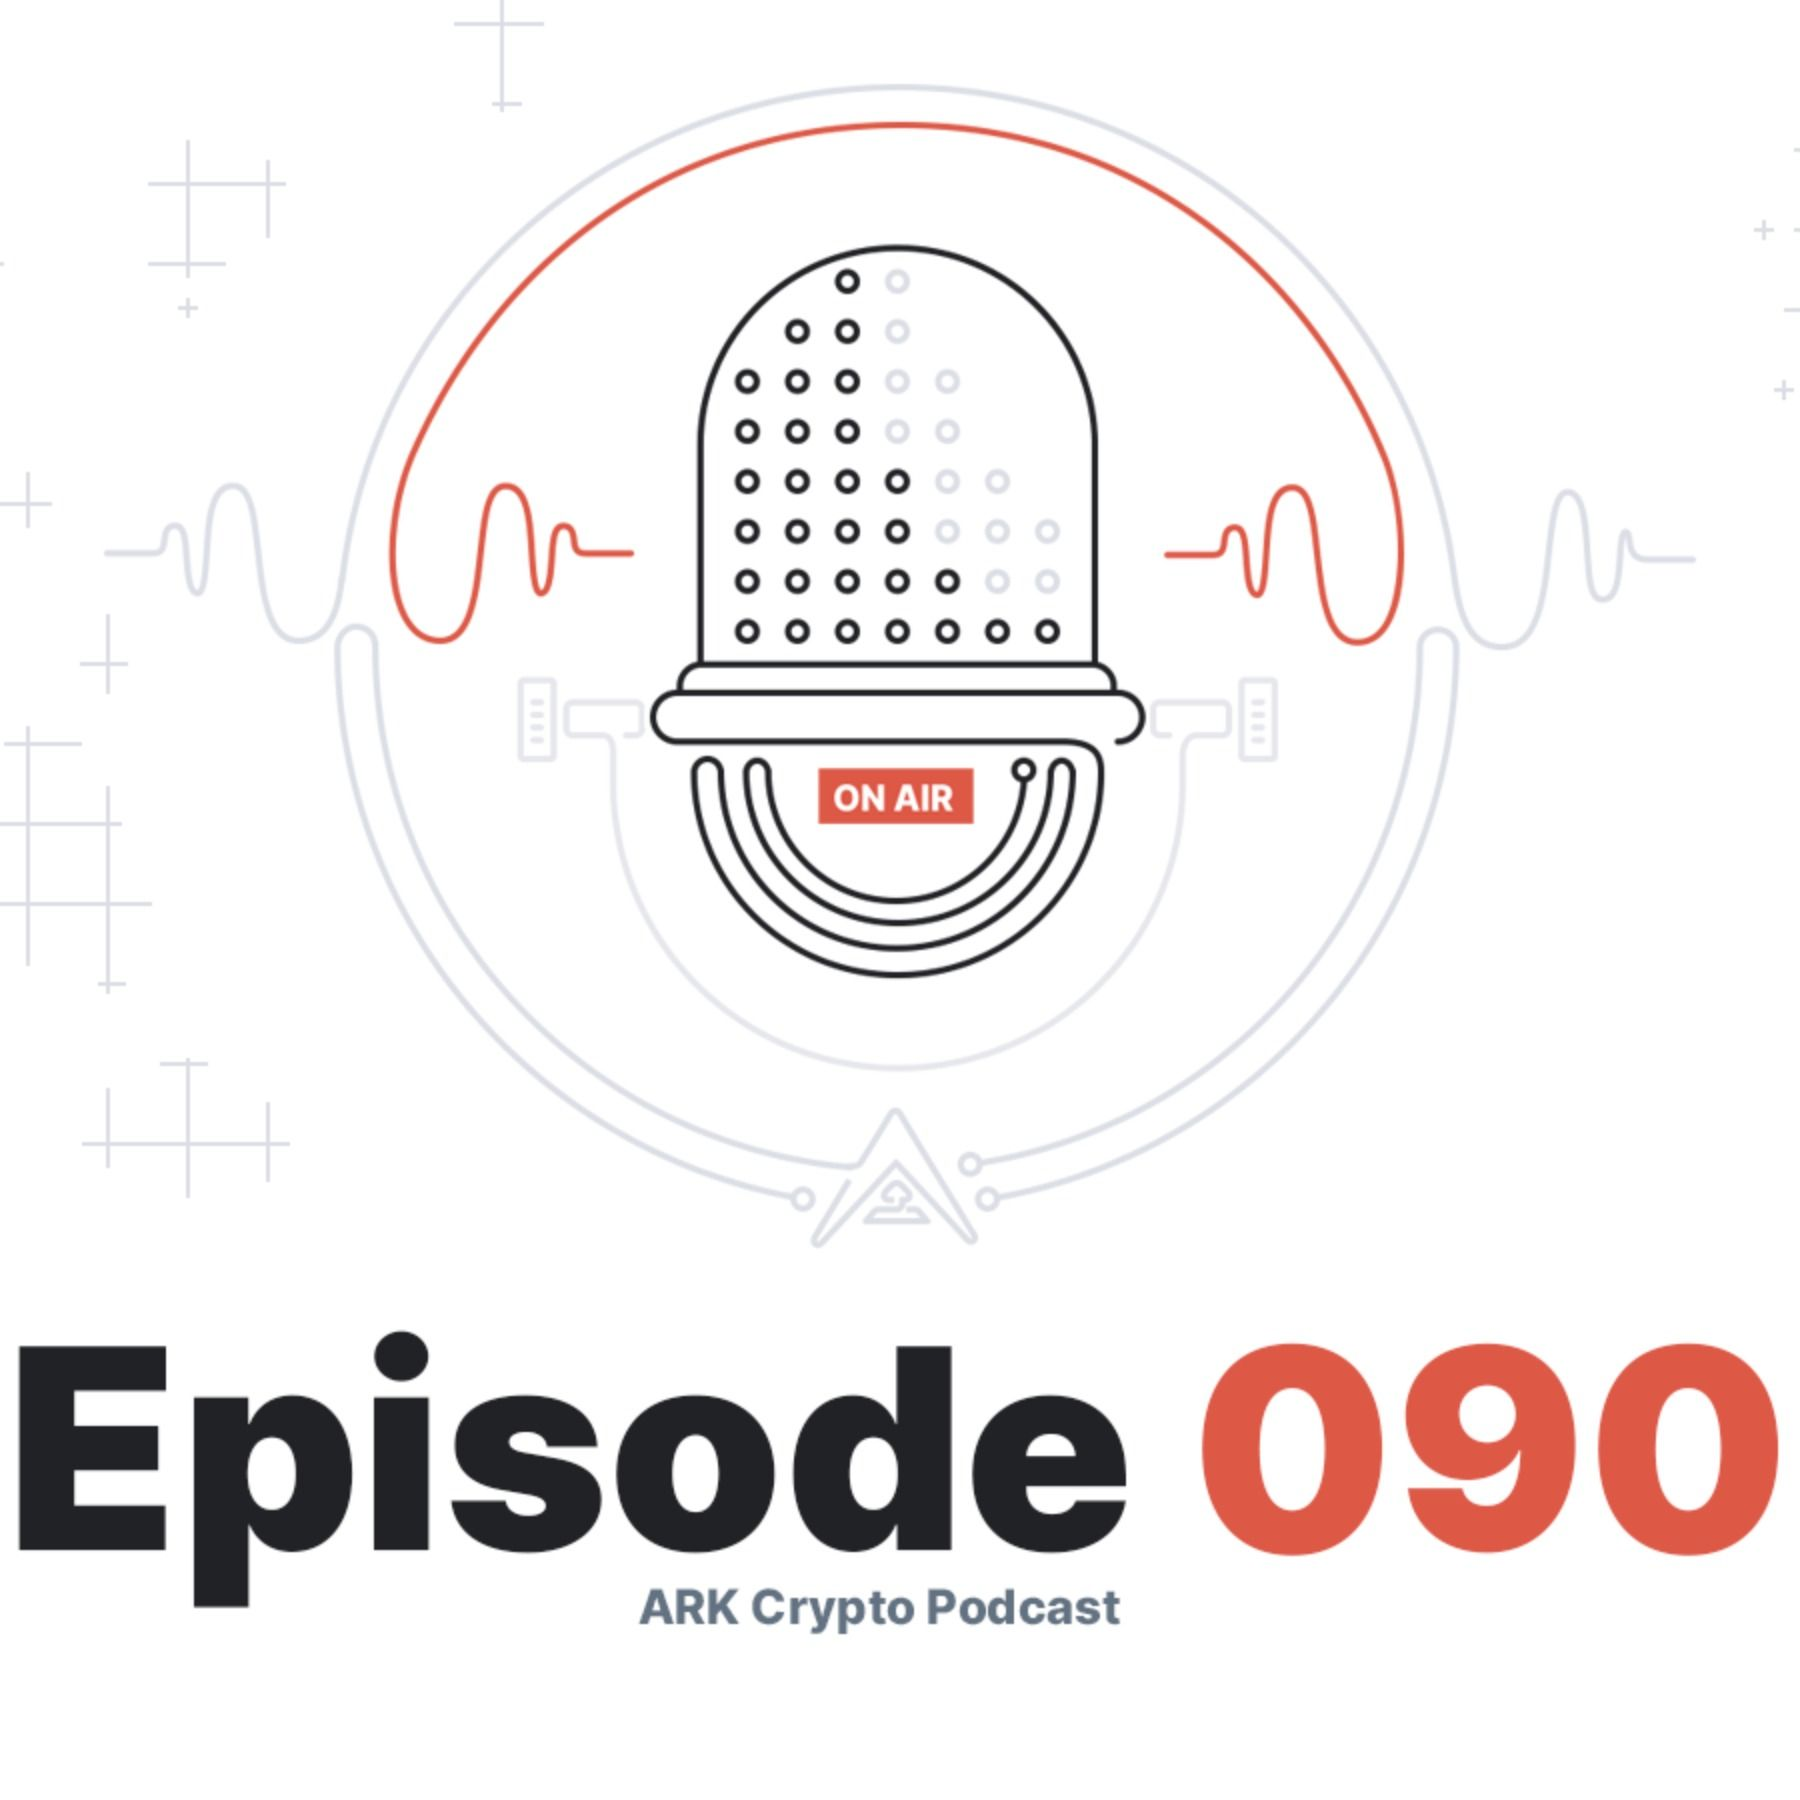 Question and Answers on ARK Technology (for Developers)- ARK Crypto Podcast #090